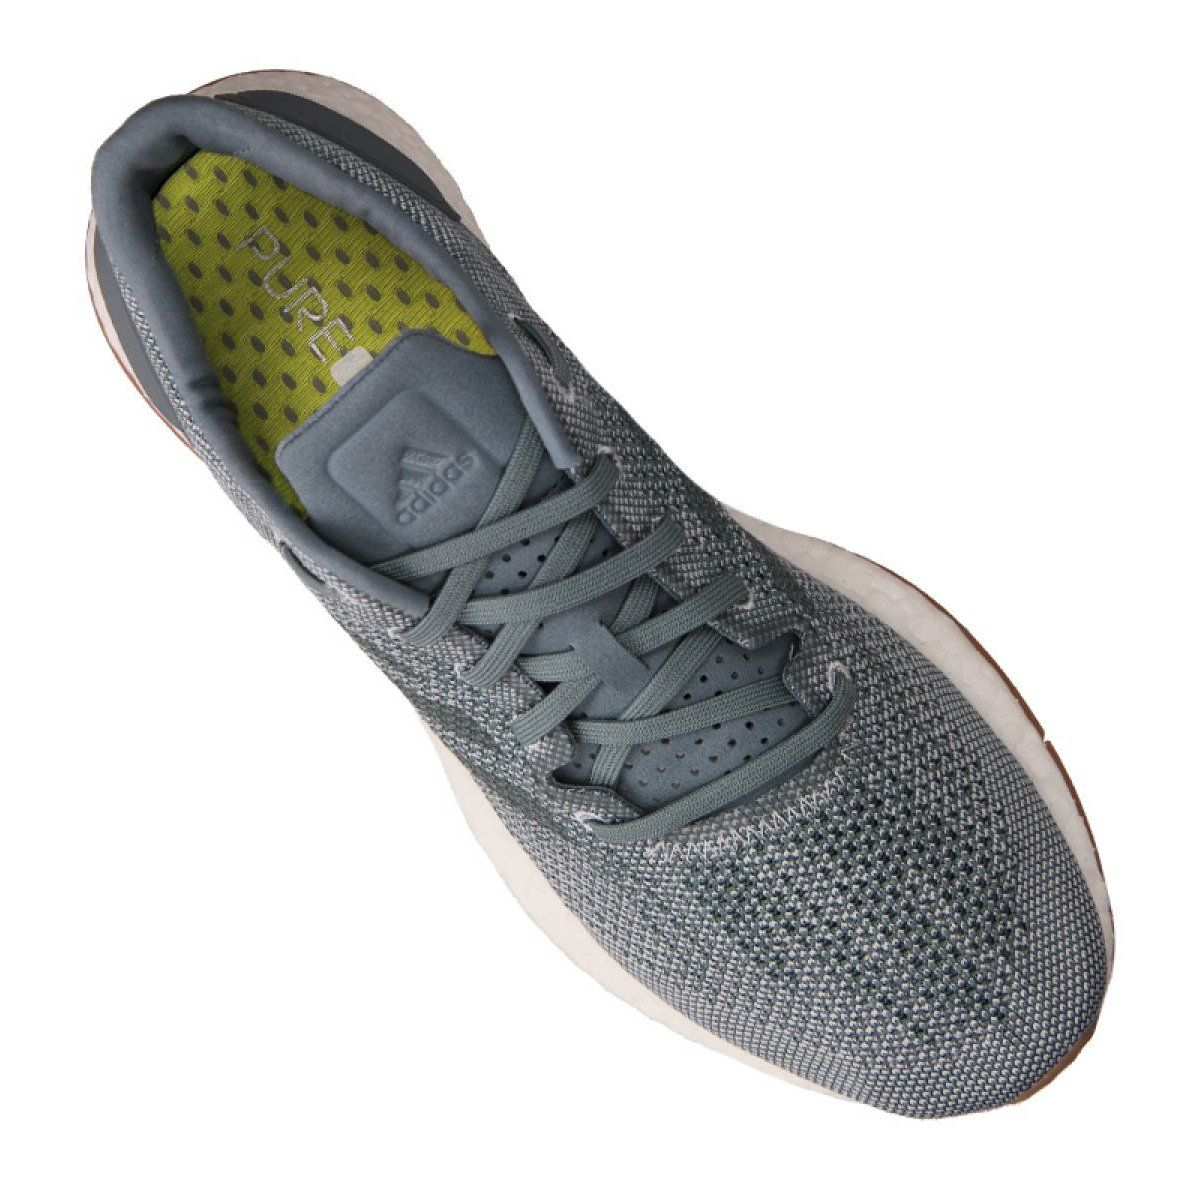 Adidas Pureboost Dpr M Cm8318 Shoes Grey Adidas Pure Boost Shoes Adidas Running Shoes